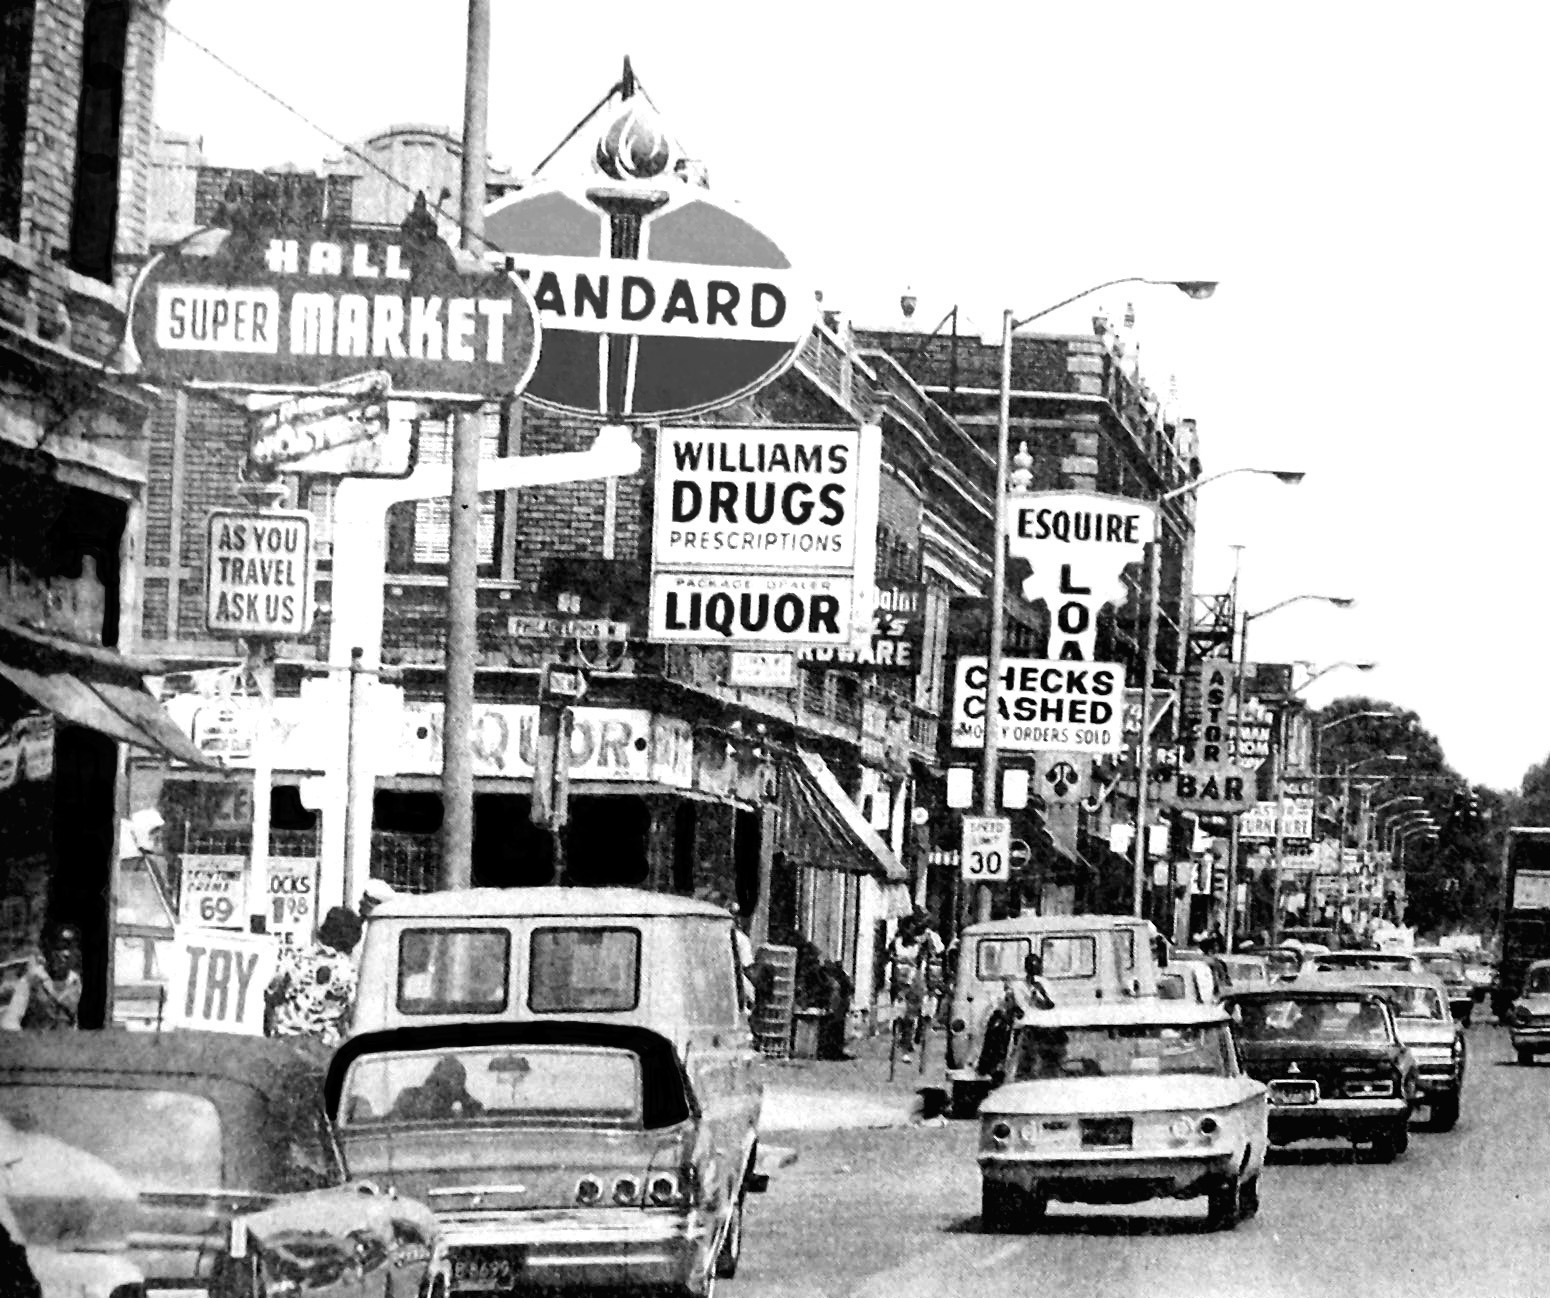 Black and white photograph of Black Bottom street scene from the 1940s with cars and street signs.